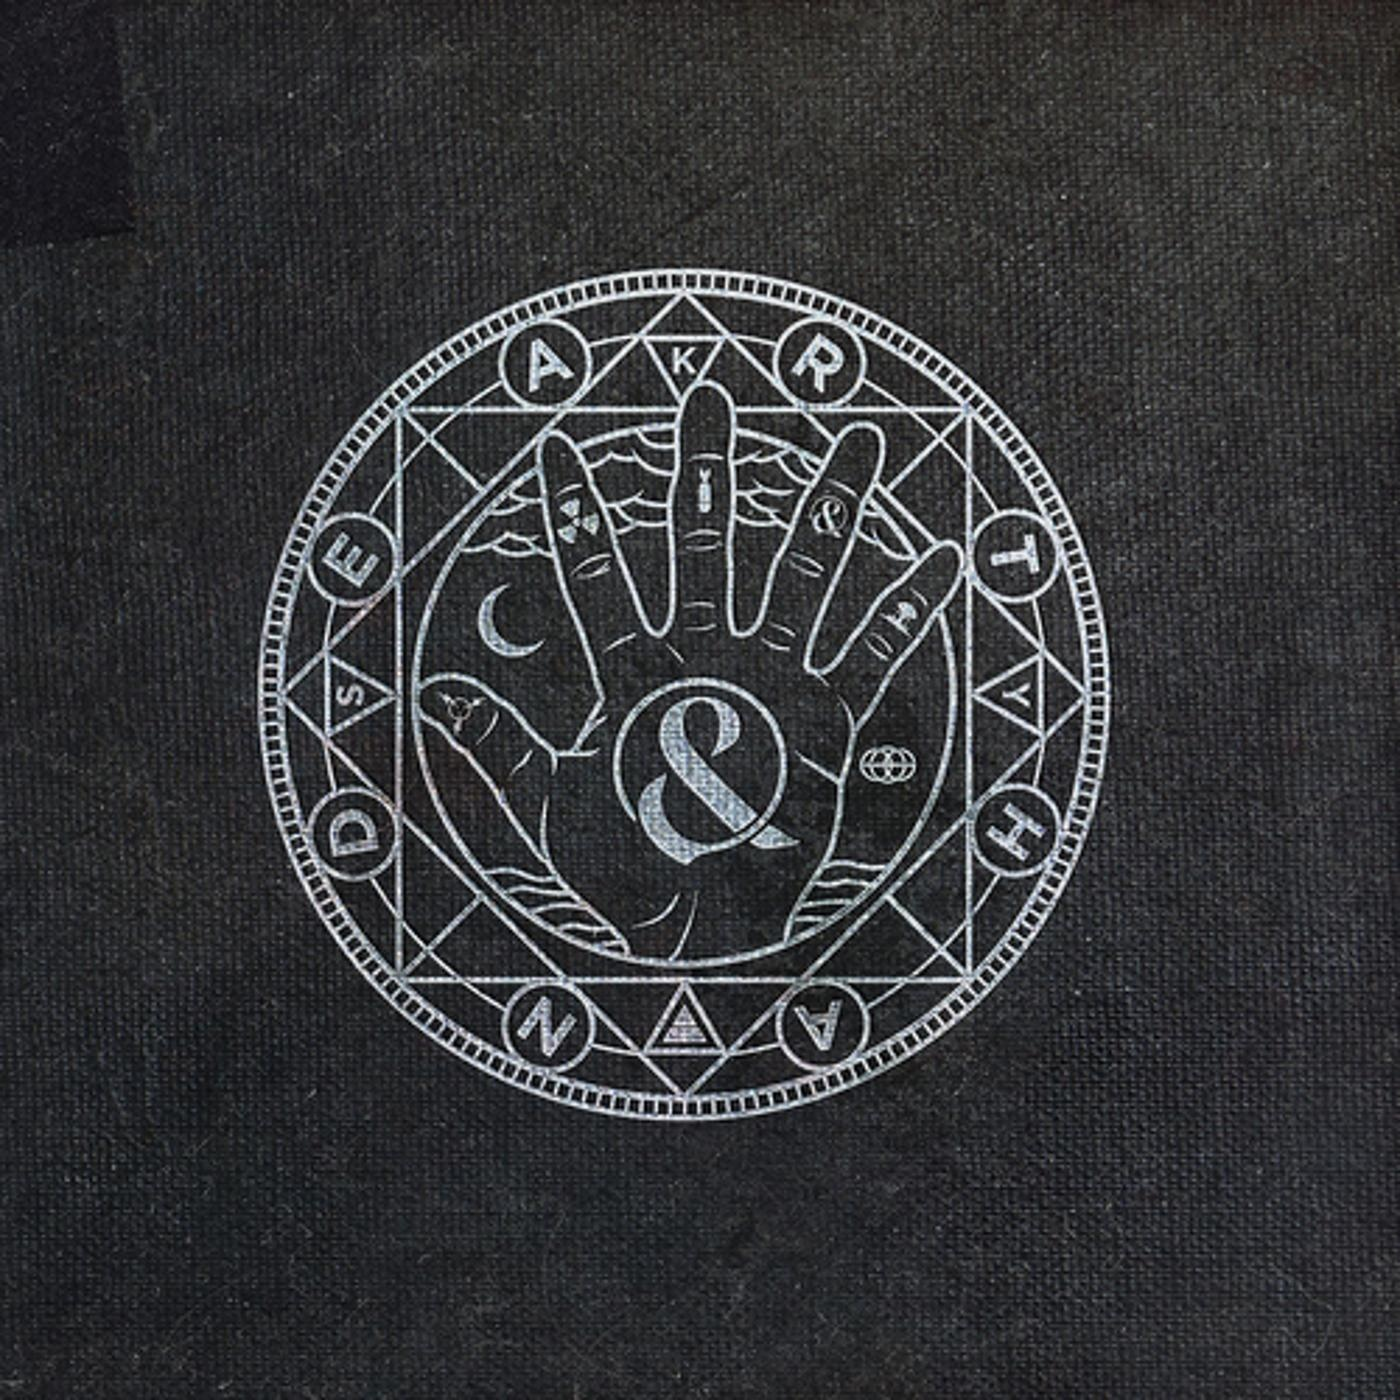 Of Mice & Men - Earth & Sky (New Track) (2019)